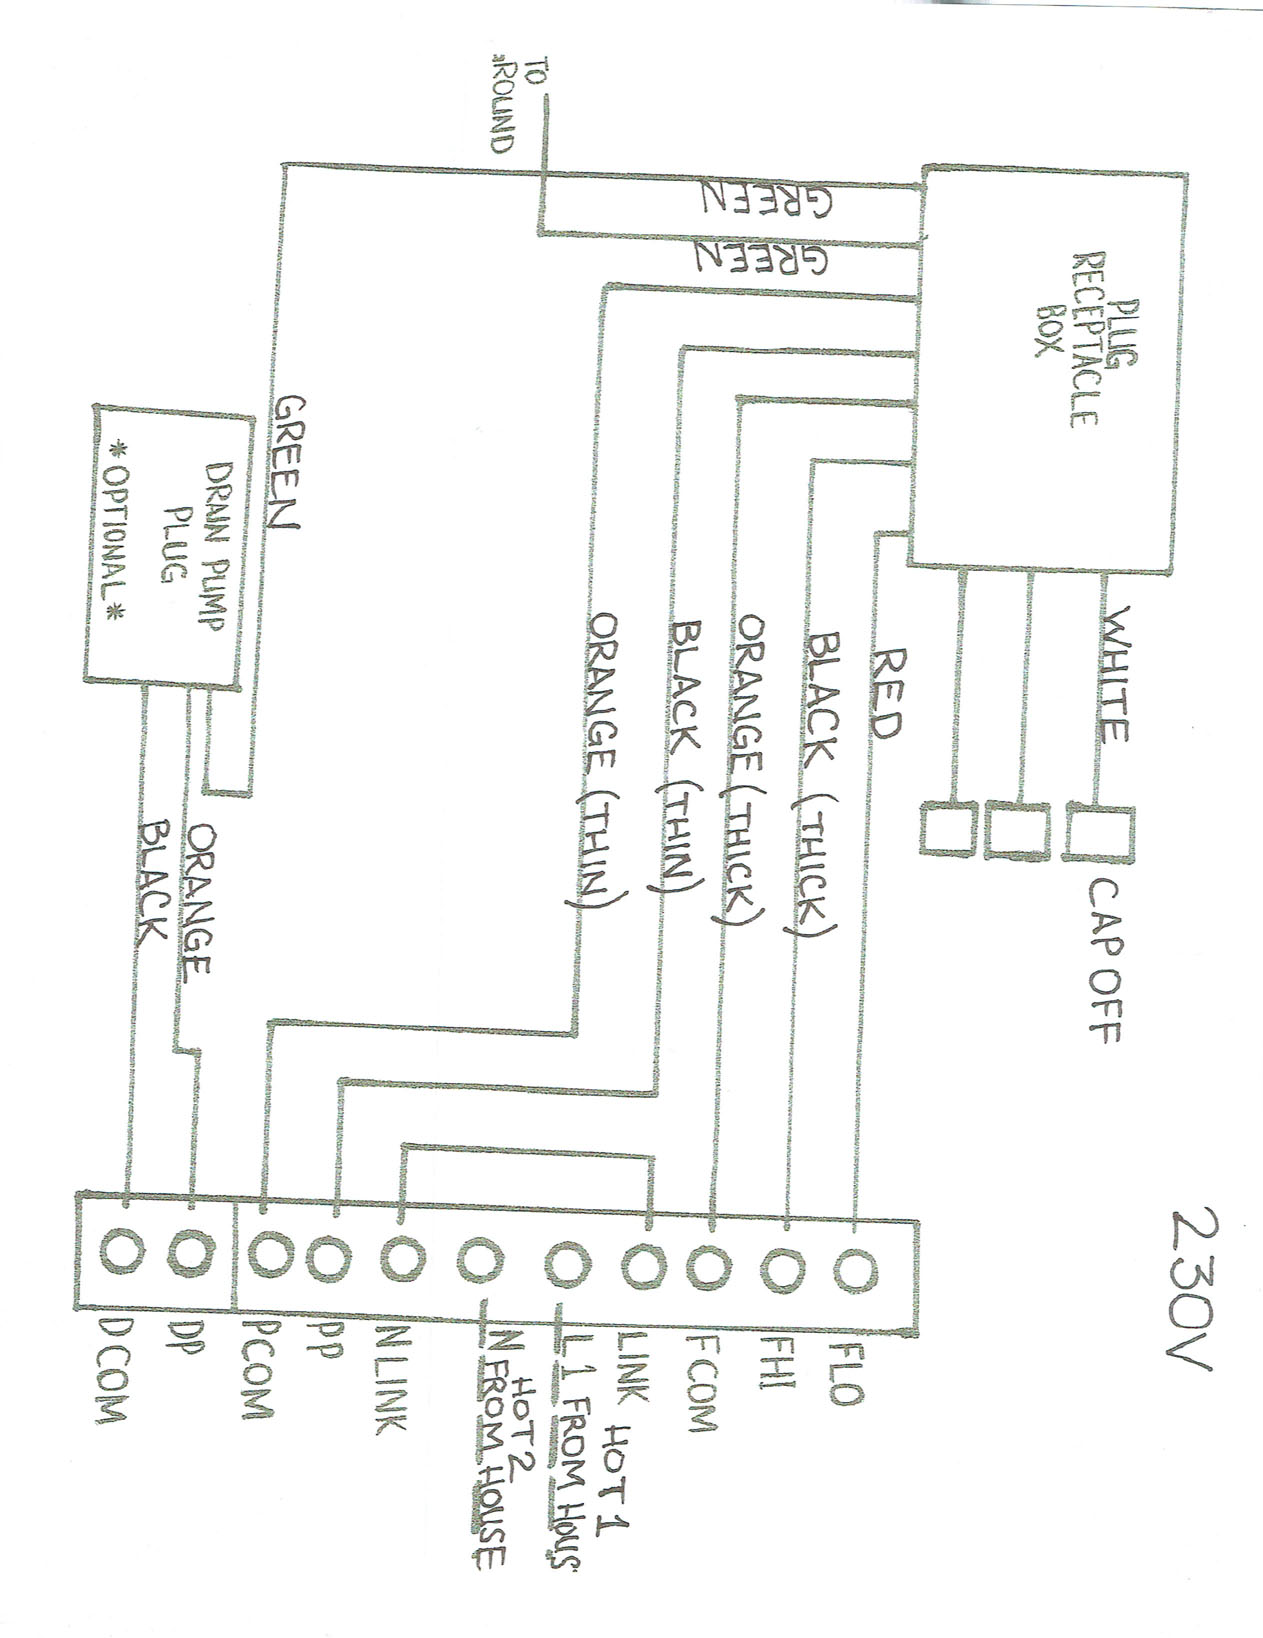 Mastercool Thermostat Wiring Diagram